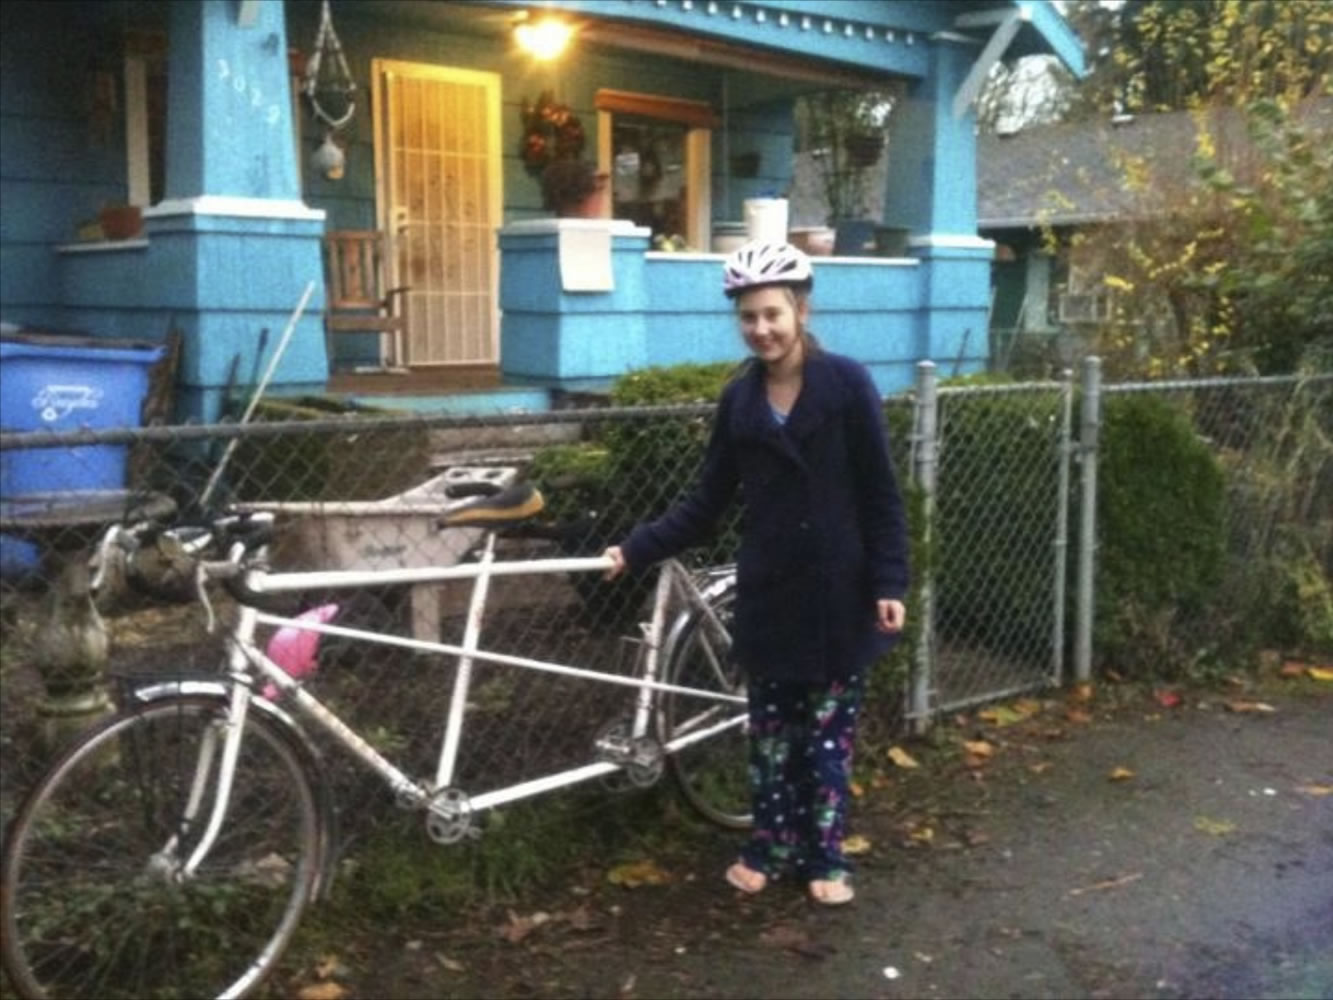 Courtney Forbes stands next to her tandem bicycle.